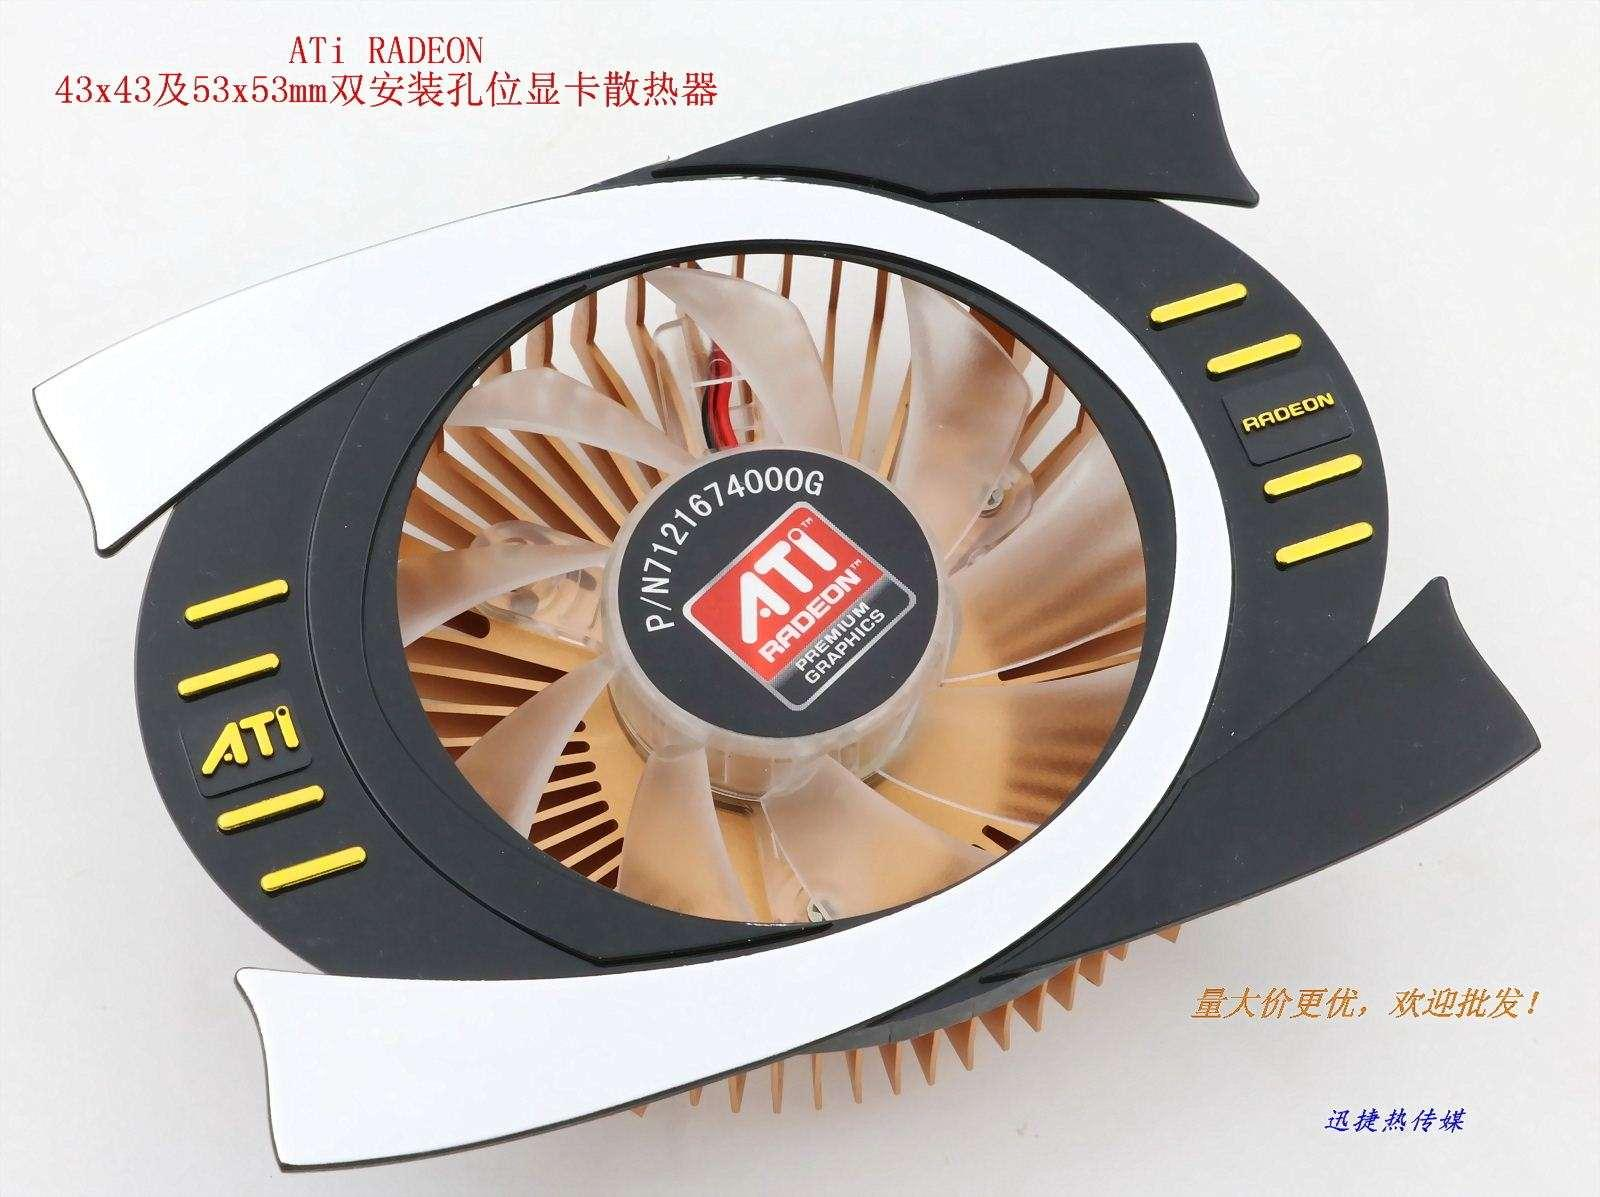 New Original for ATi RADEON 43*43 and 53*53mm holes bit graphics card cooler fan with heat sink